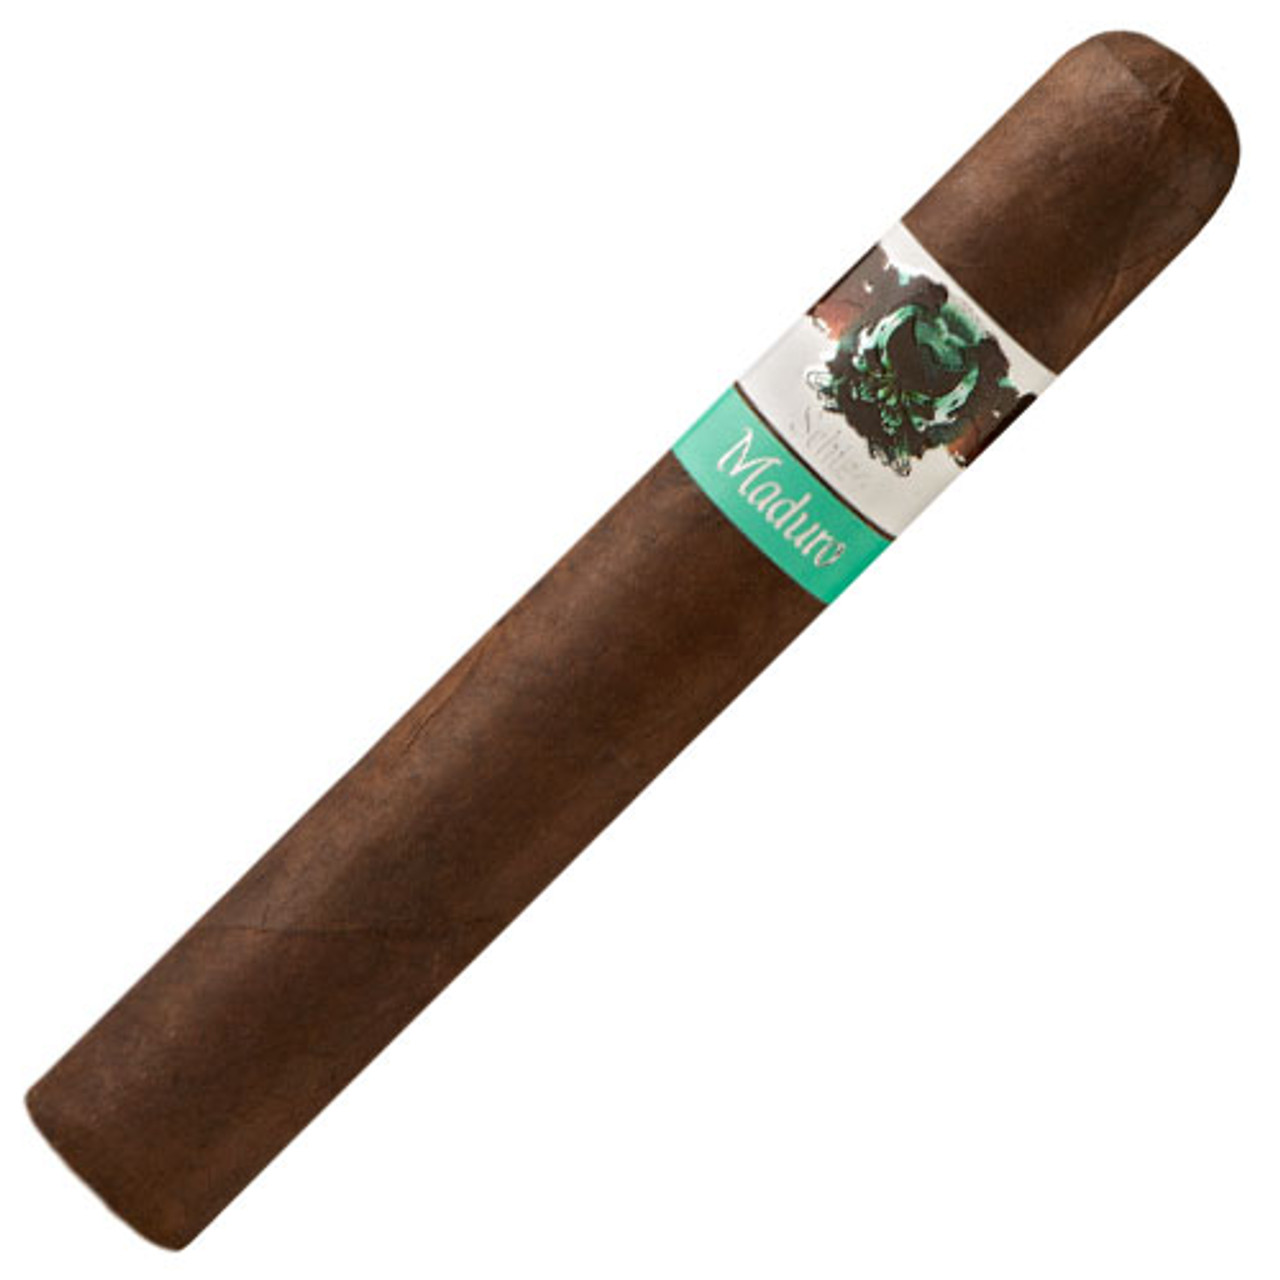 Asylum Schizo 7 X 70 Maduro Cigars - 7 x 70 (Bundle of 20)